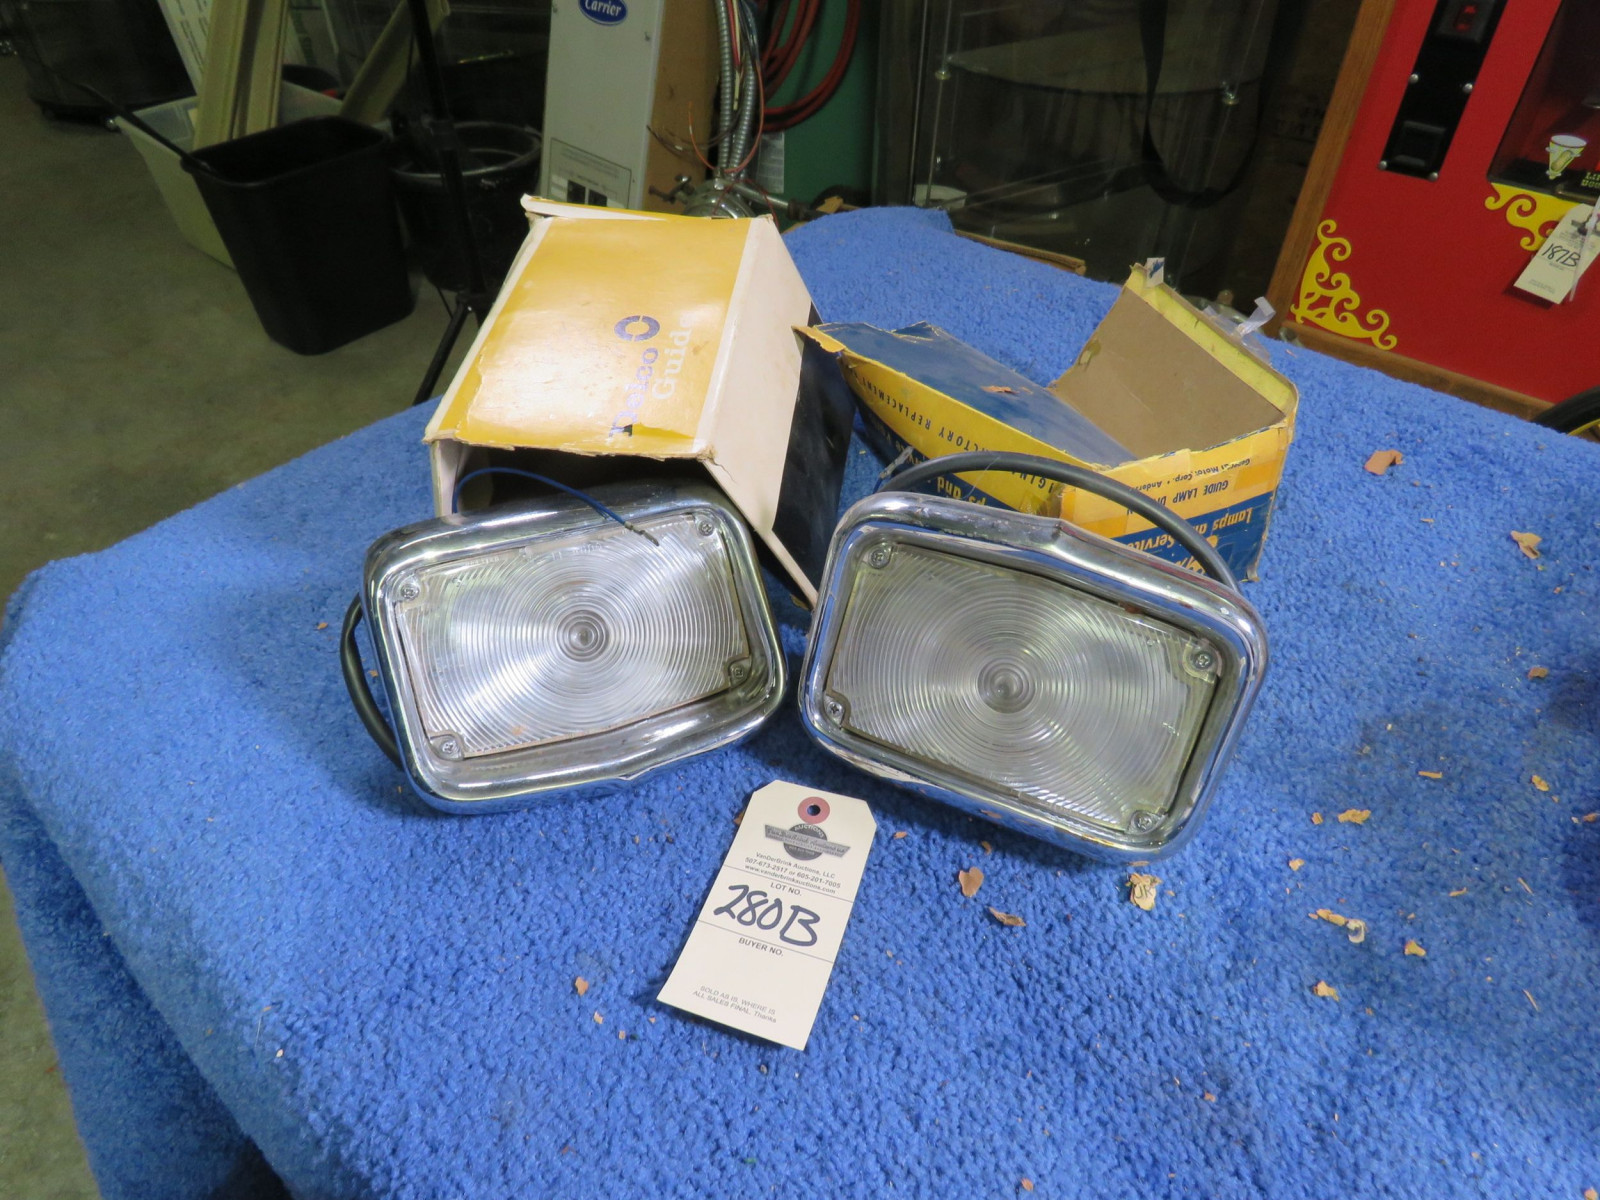 NIB 1956 Chevrolet Park Lights - Image 1